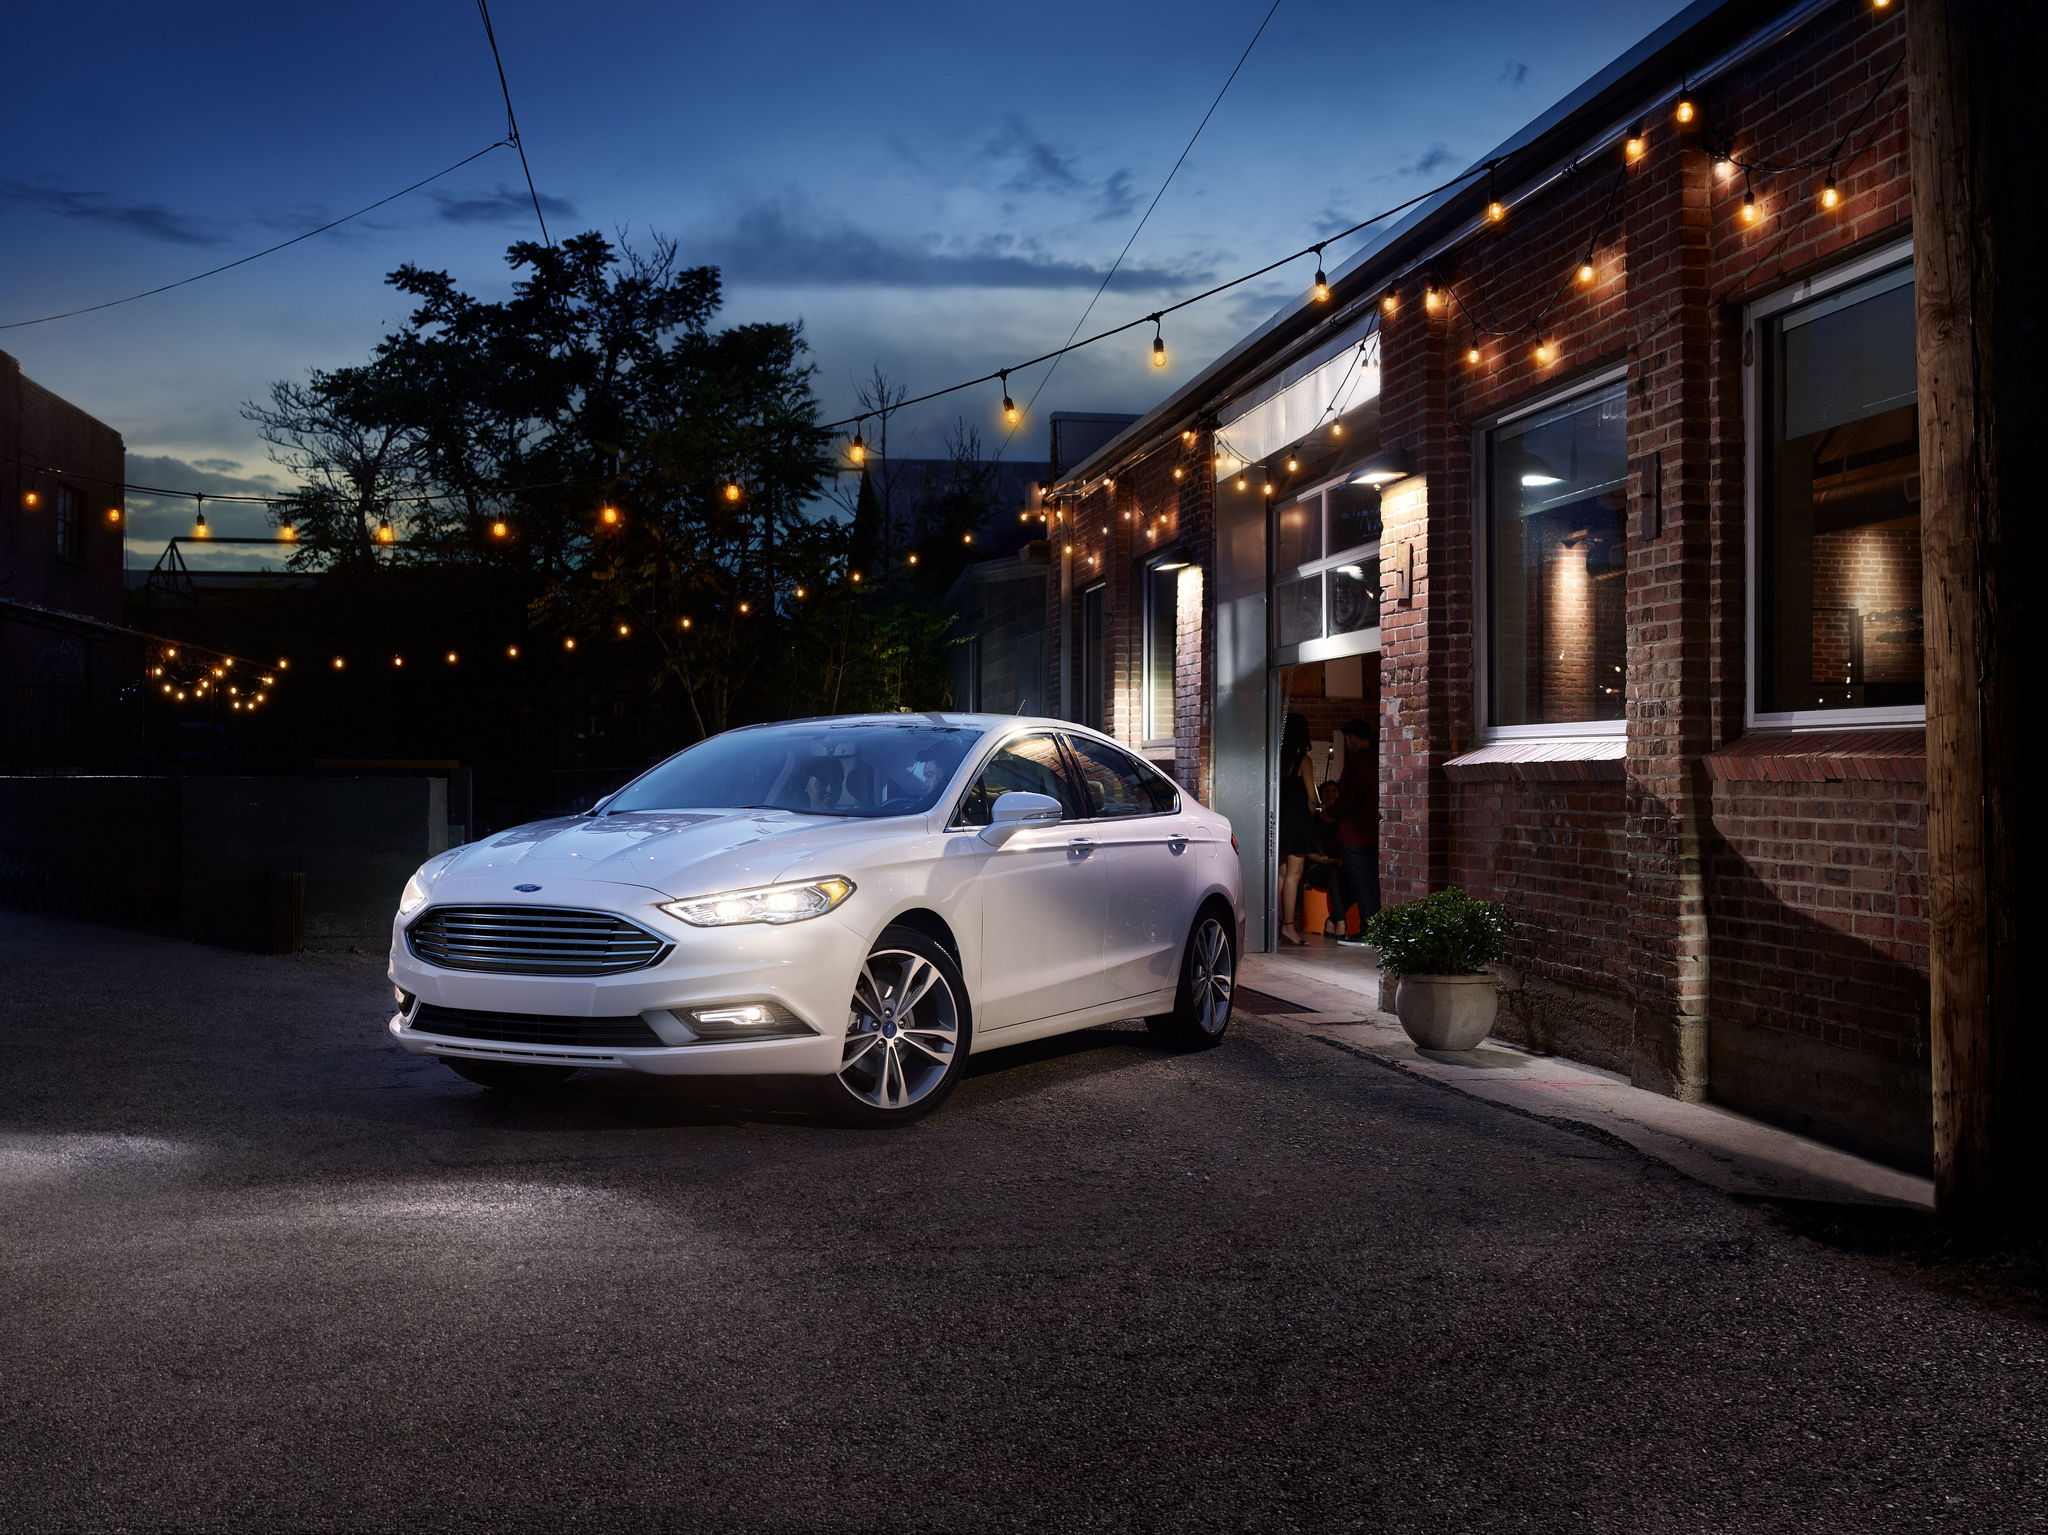 The 2018 Ford Fusion is loaded with luxurious features.